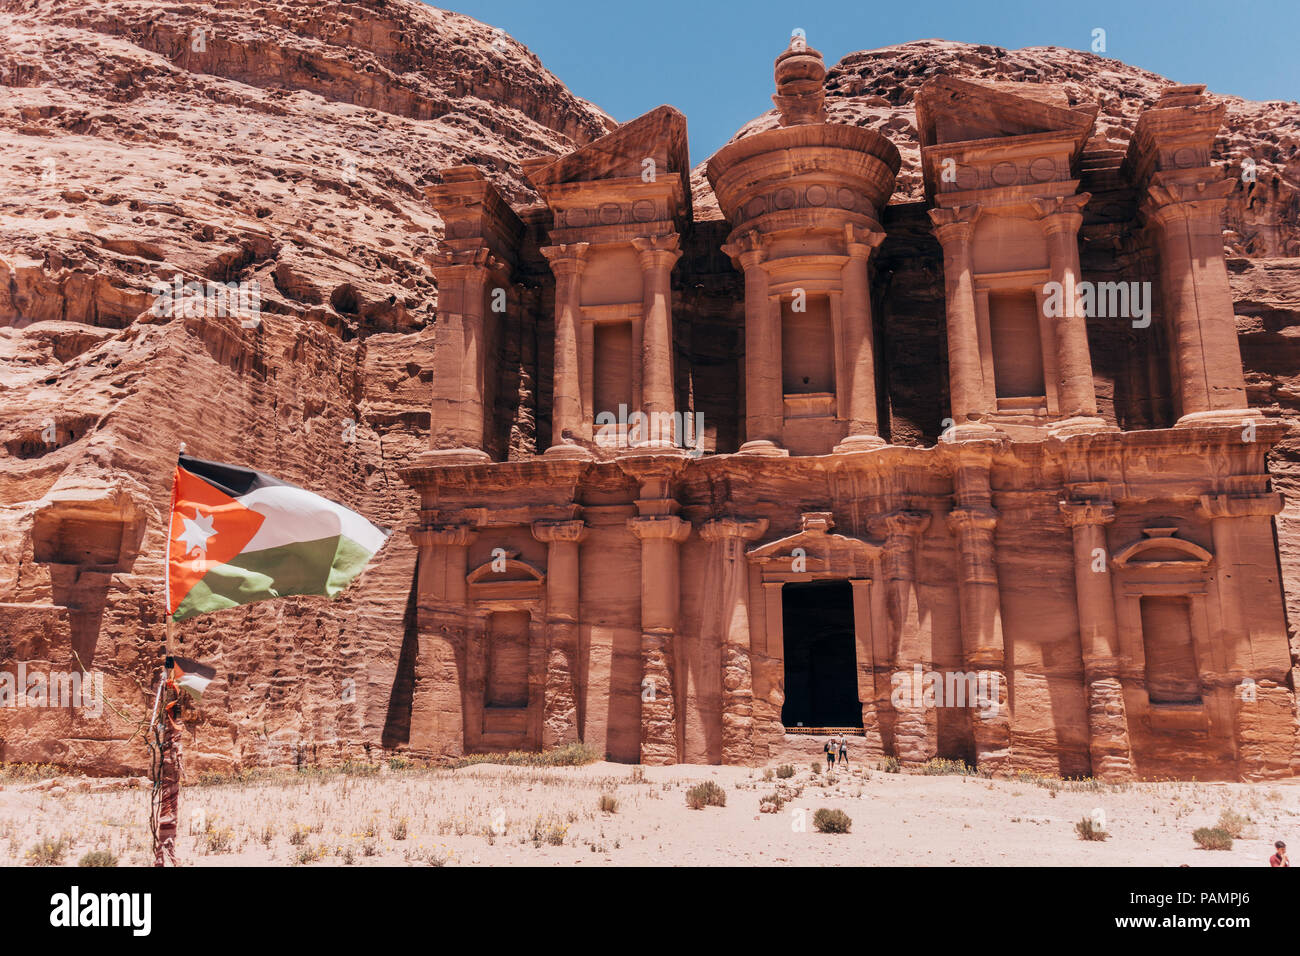 the Jordanian flag flies in front of the Monastery, one of the largest structures in the Lost City of Petra Stock Photo